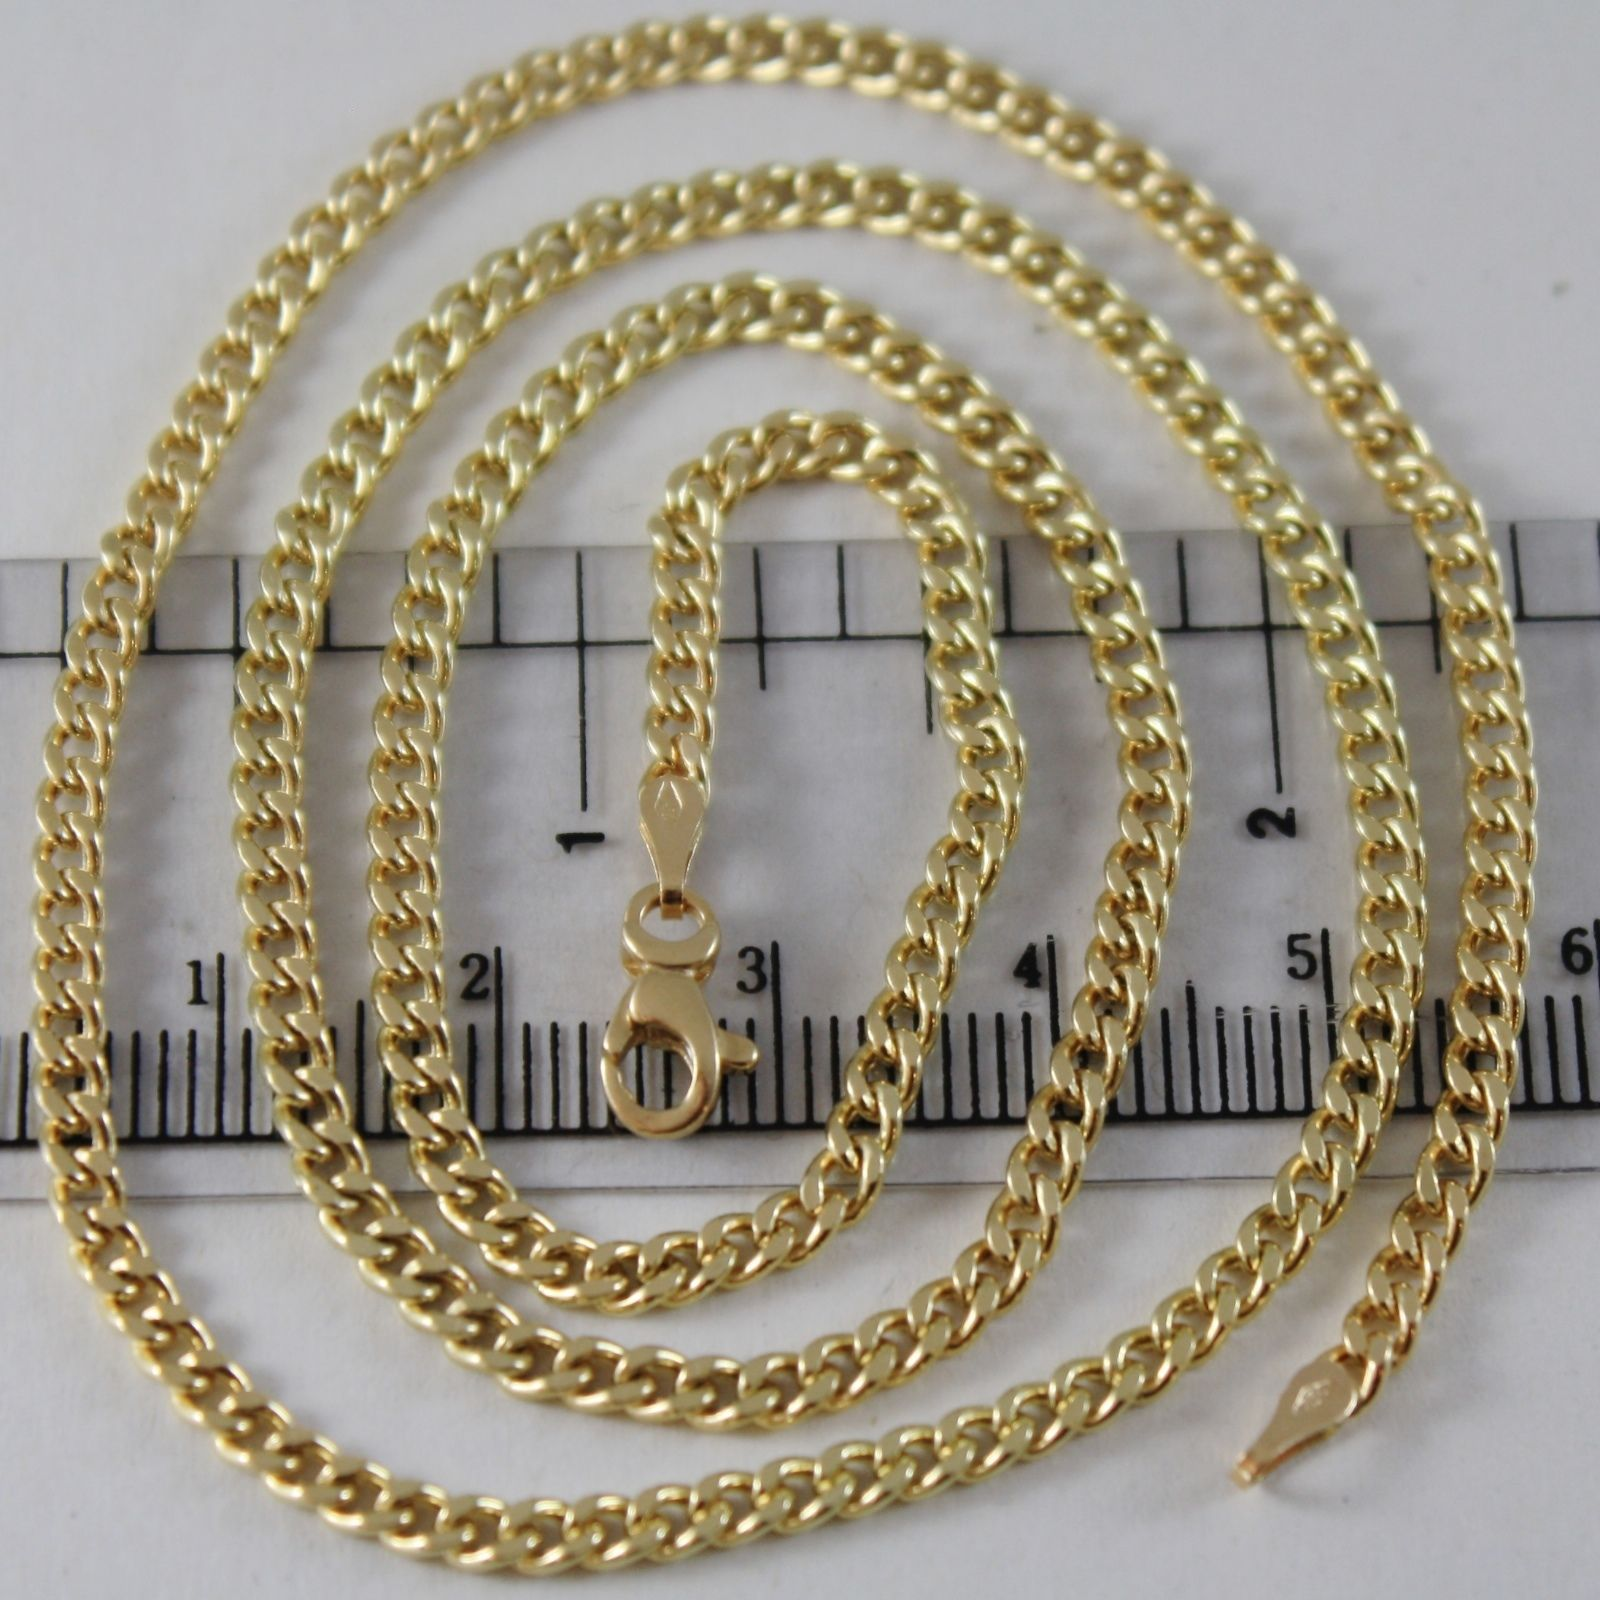 18K YELLOW GOLD CHAIN LITTLE GOURMETTE LINK 2.5 MM, 15.75 INCHES MADE IN ITALY